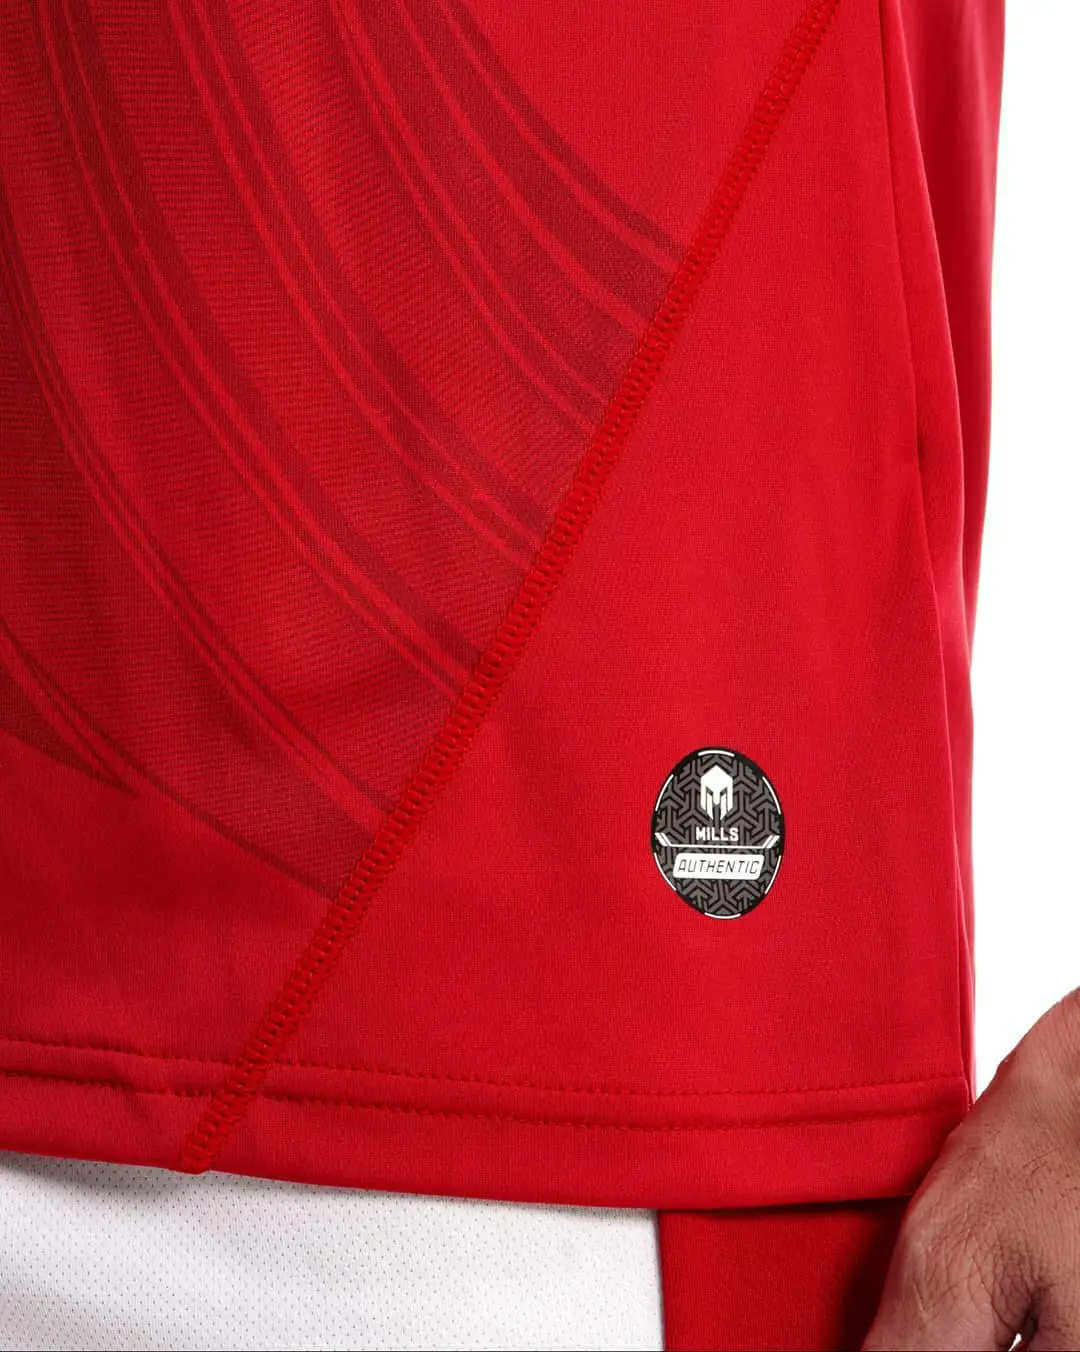 gambar detail review Jersey timnas Indonesia 2020 x mills